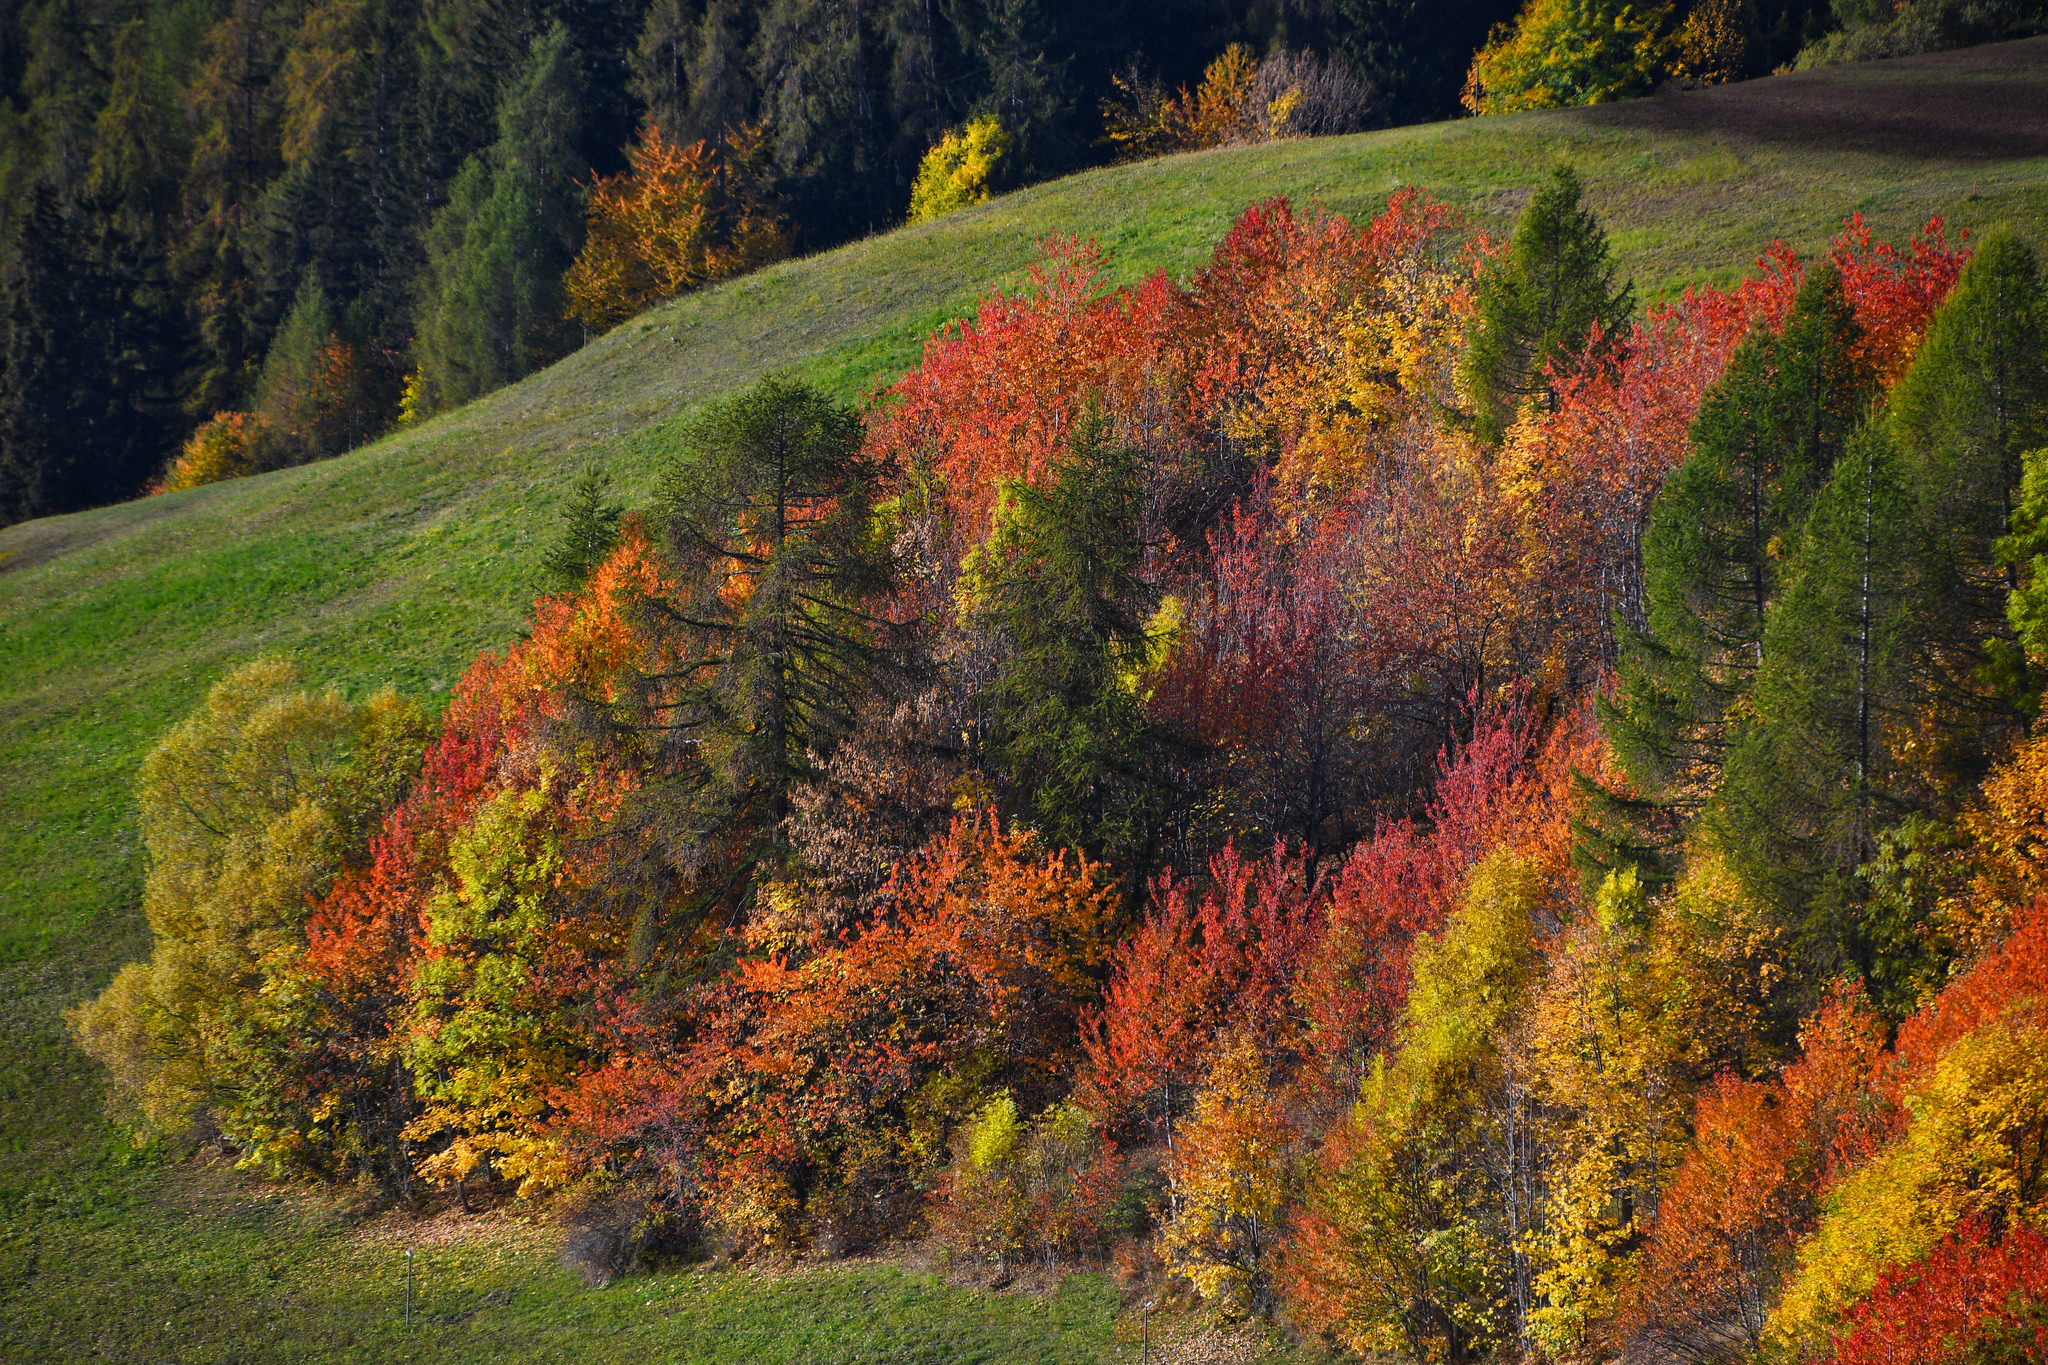 The colors of autumn...